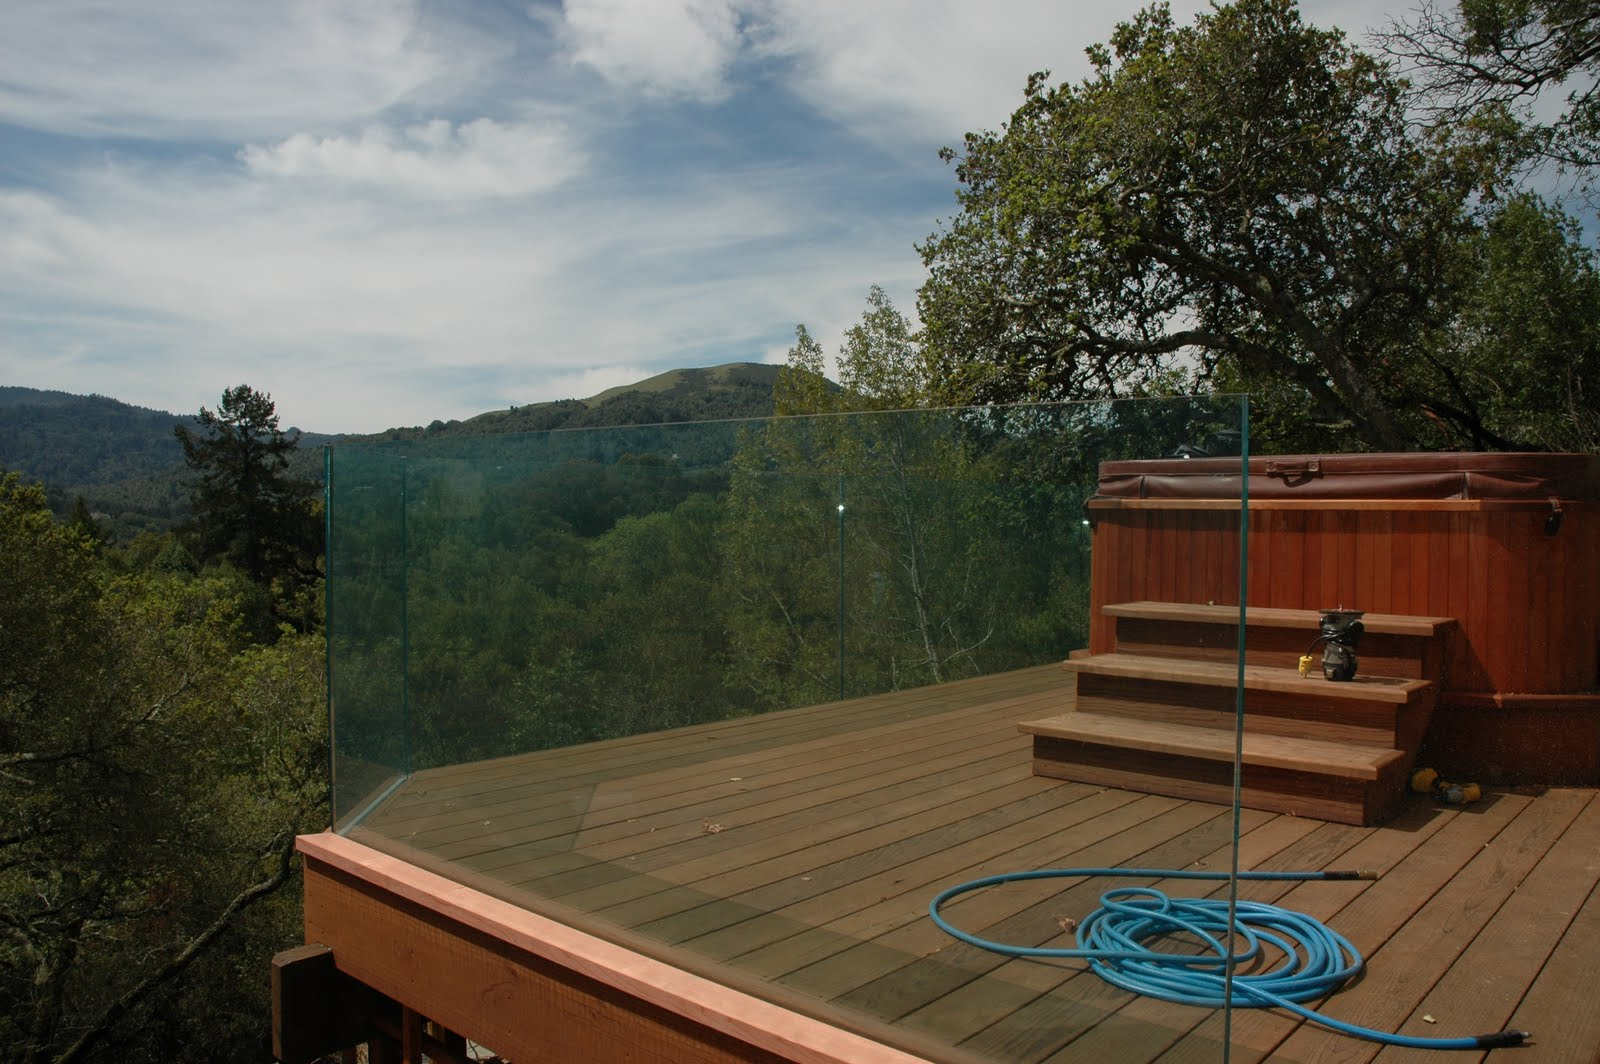 Glass railings for decks - 3 4 Deck Railing Glass System With Dupont Sentry Interlayer